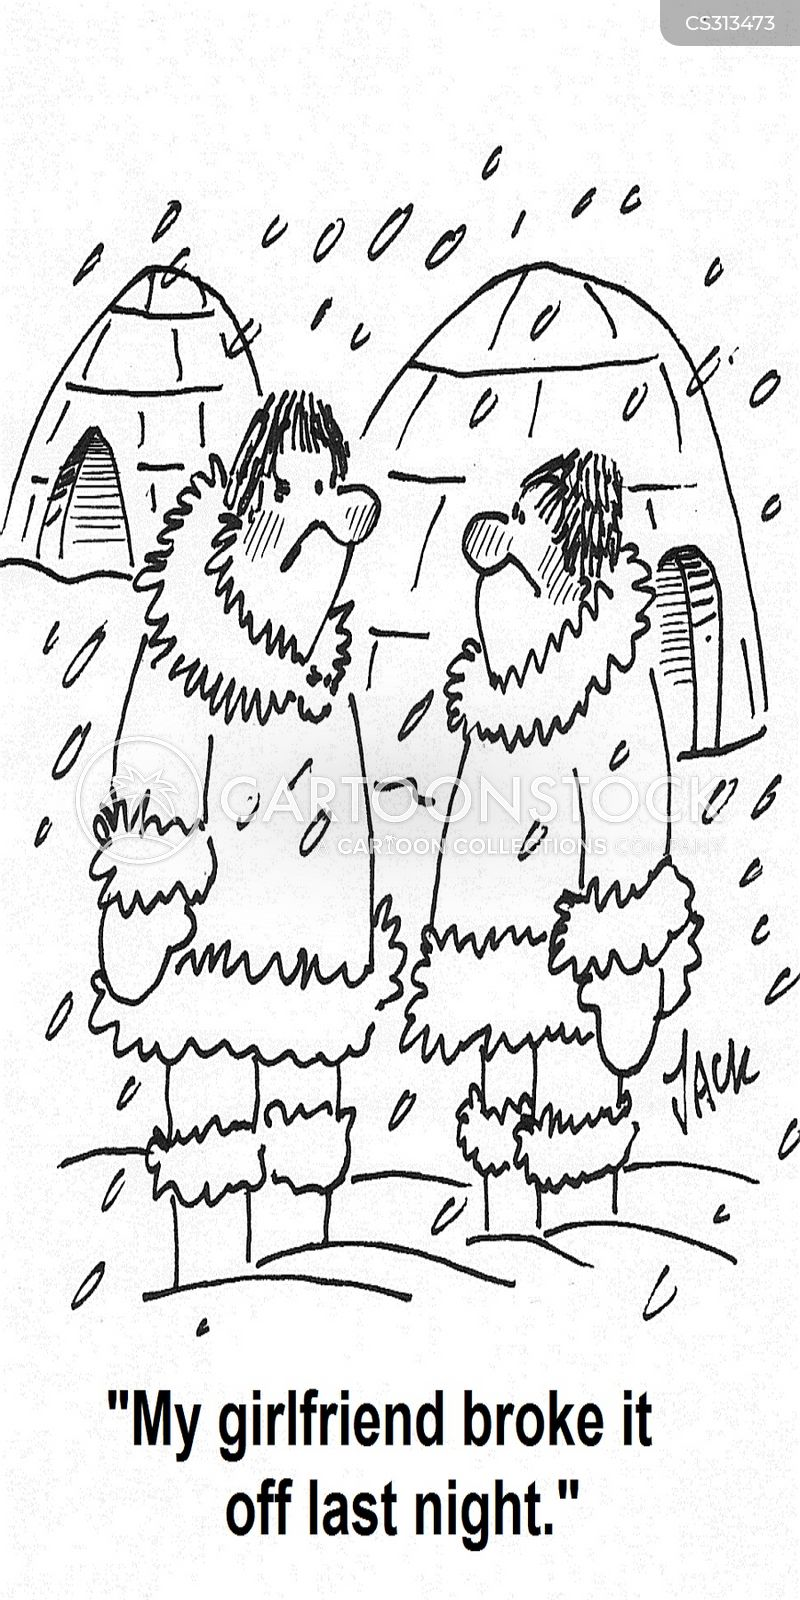 cold weathers cartoon